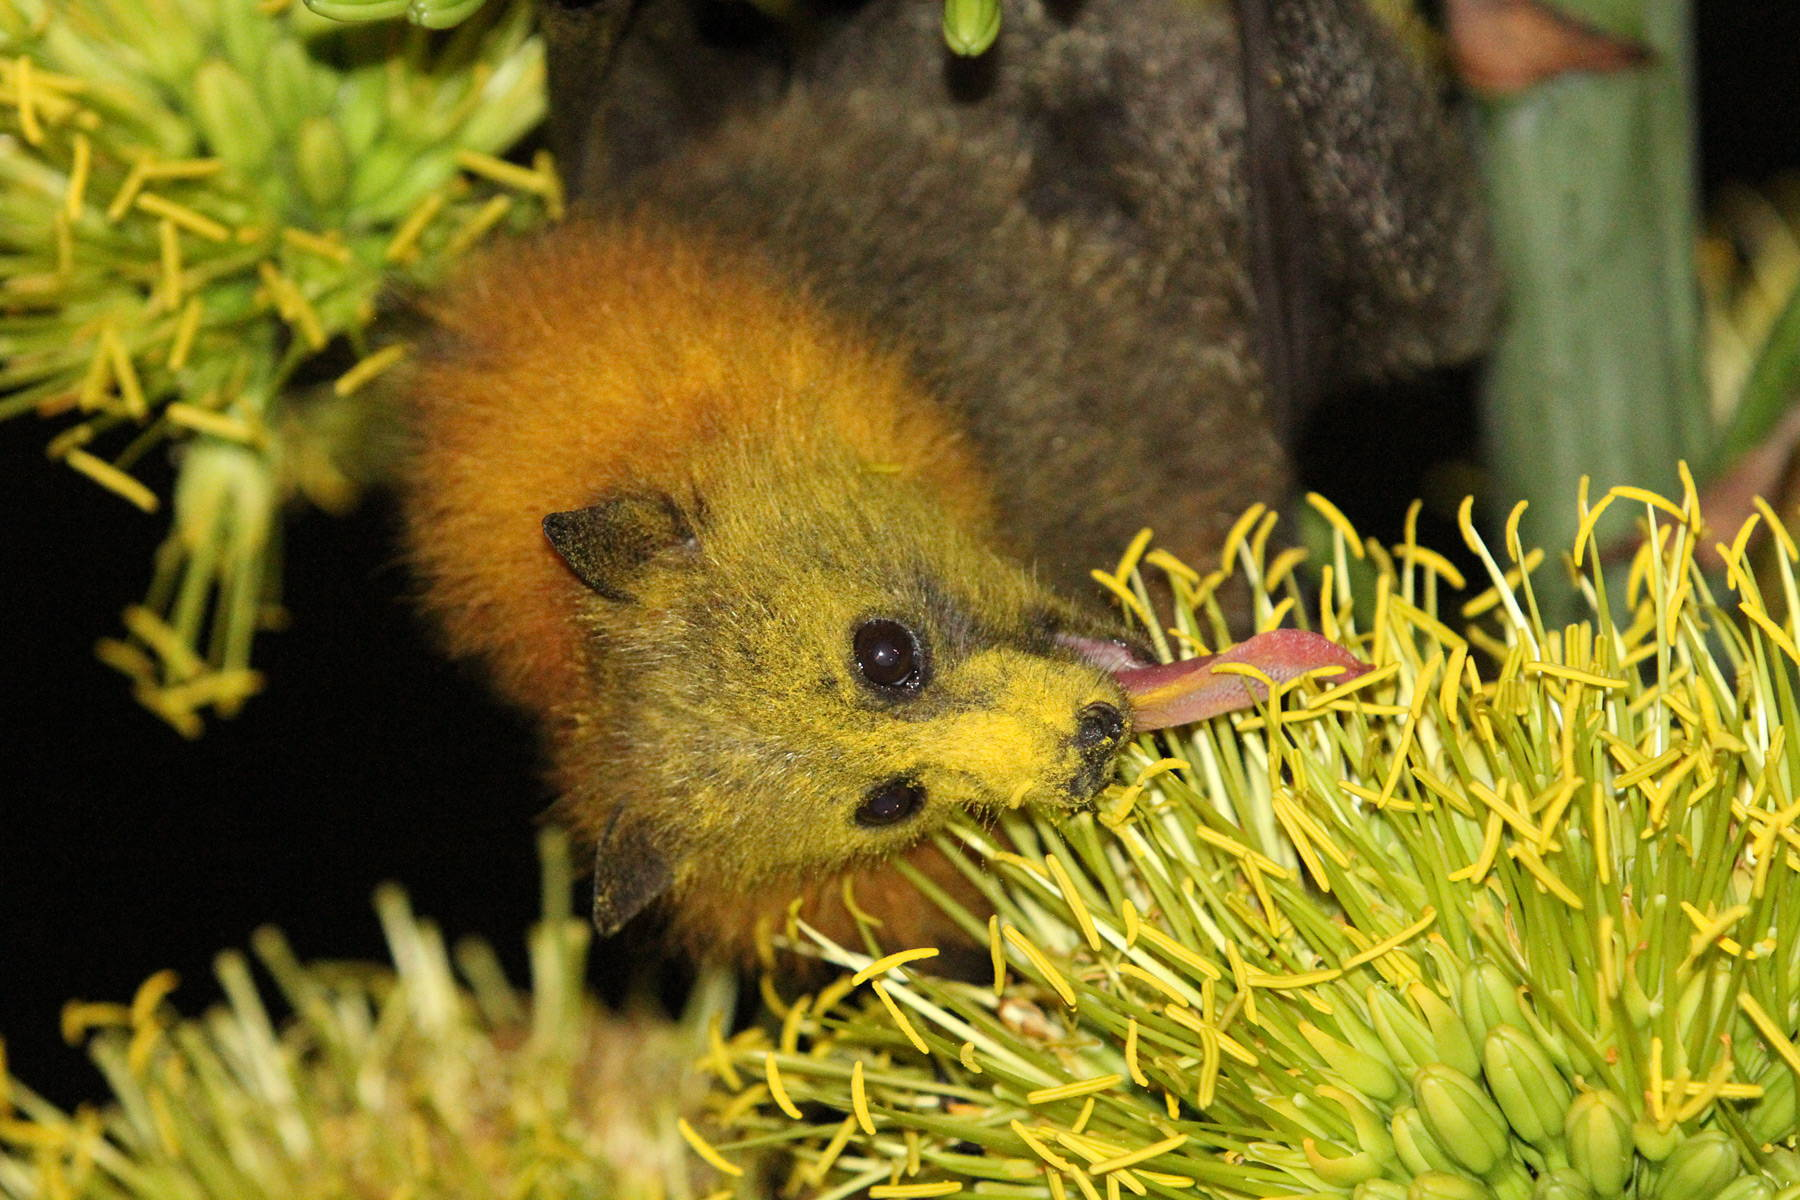 A bat, covered with yellow dust, sticks its long tongue down into the stamin of a yellow flower blossom.